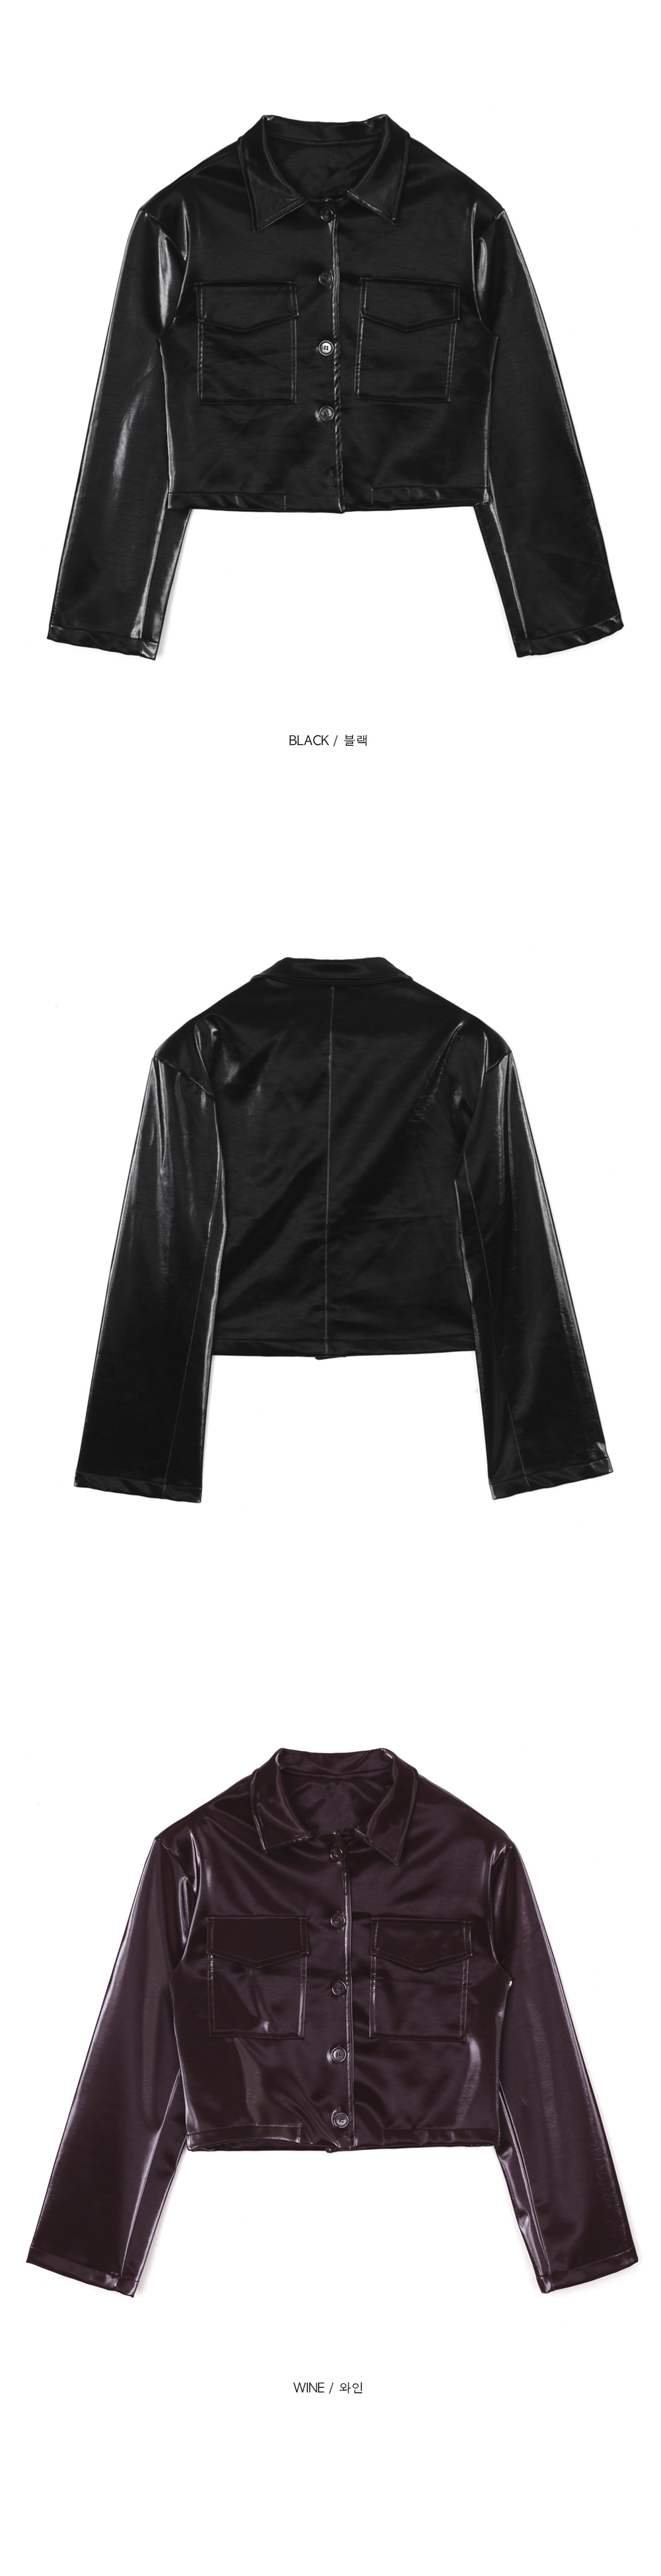 enamel crop jacket - woman